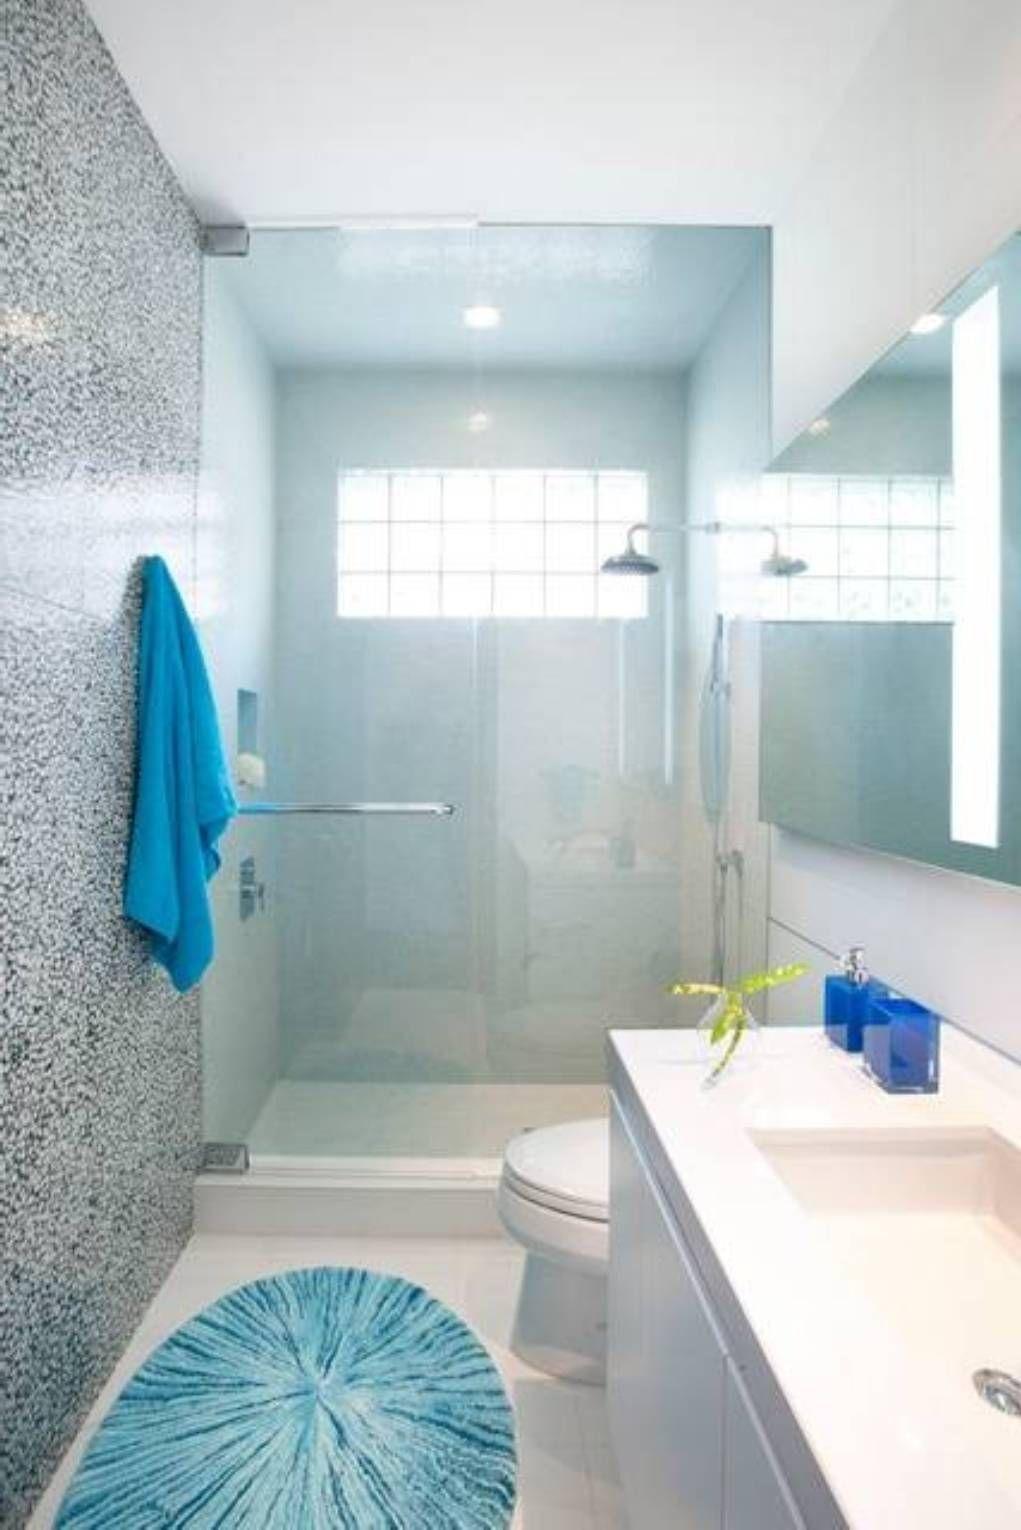 Simple bathrooms with shower - 25 Small Bathroom Ideas Photo Gallery